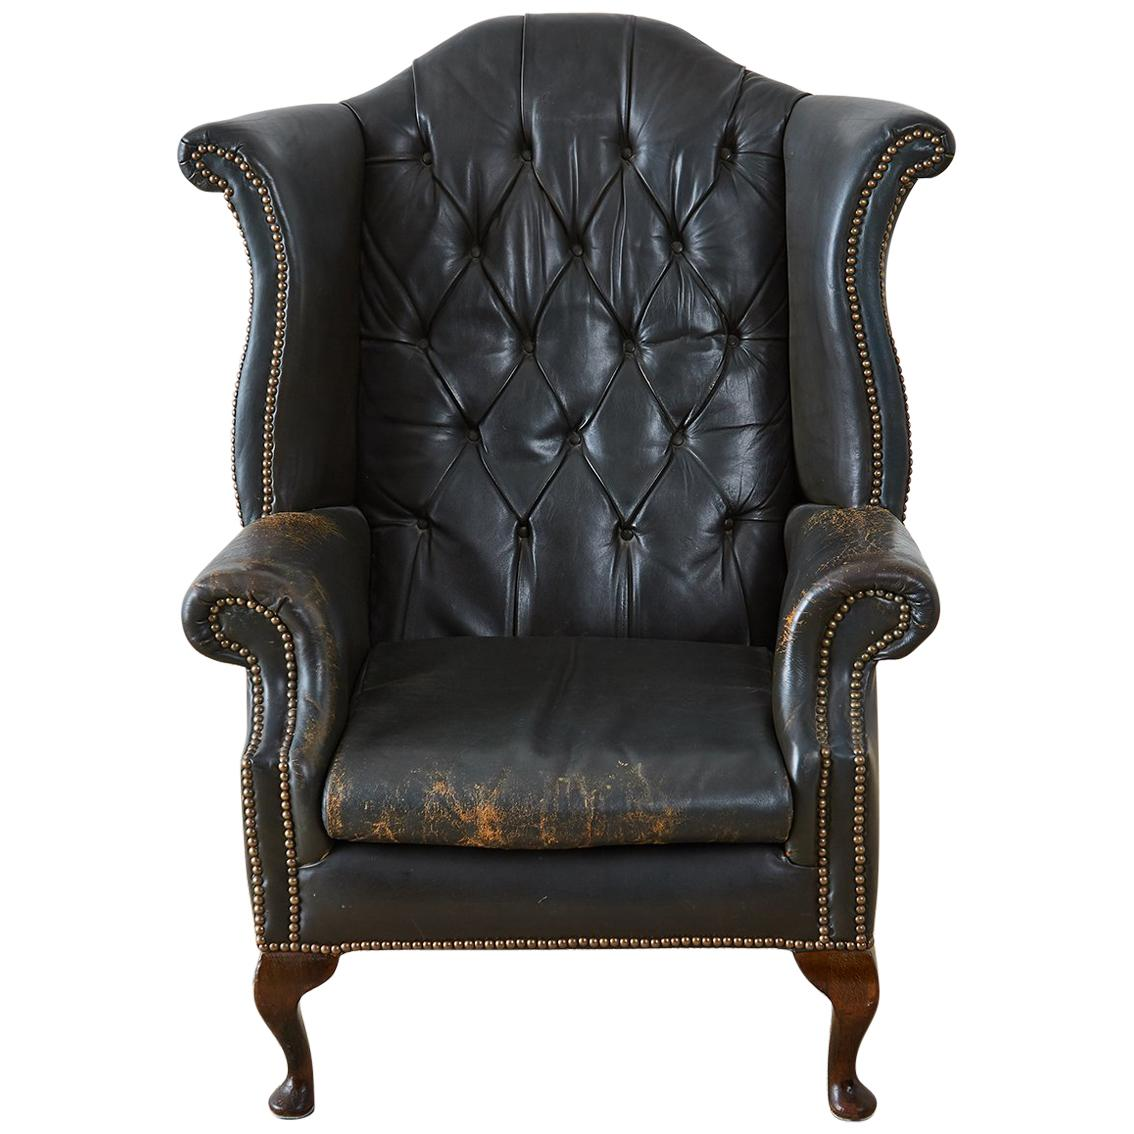 67a2c33807d7 english chesterfield tufted leather wingback library chair. english  chesterfield tufted leather wingback library chair · oversized lillian  august brown ...